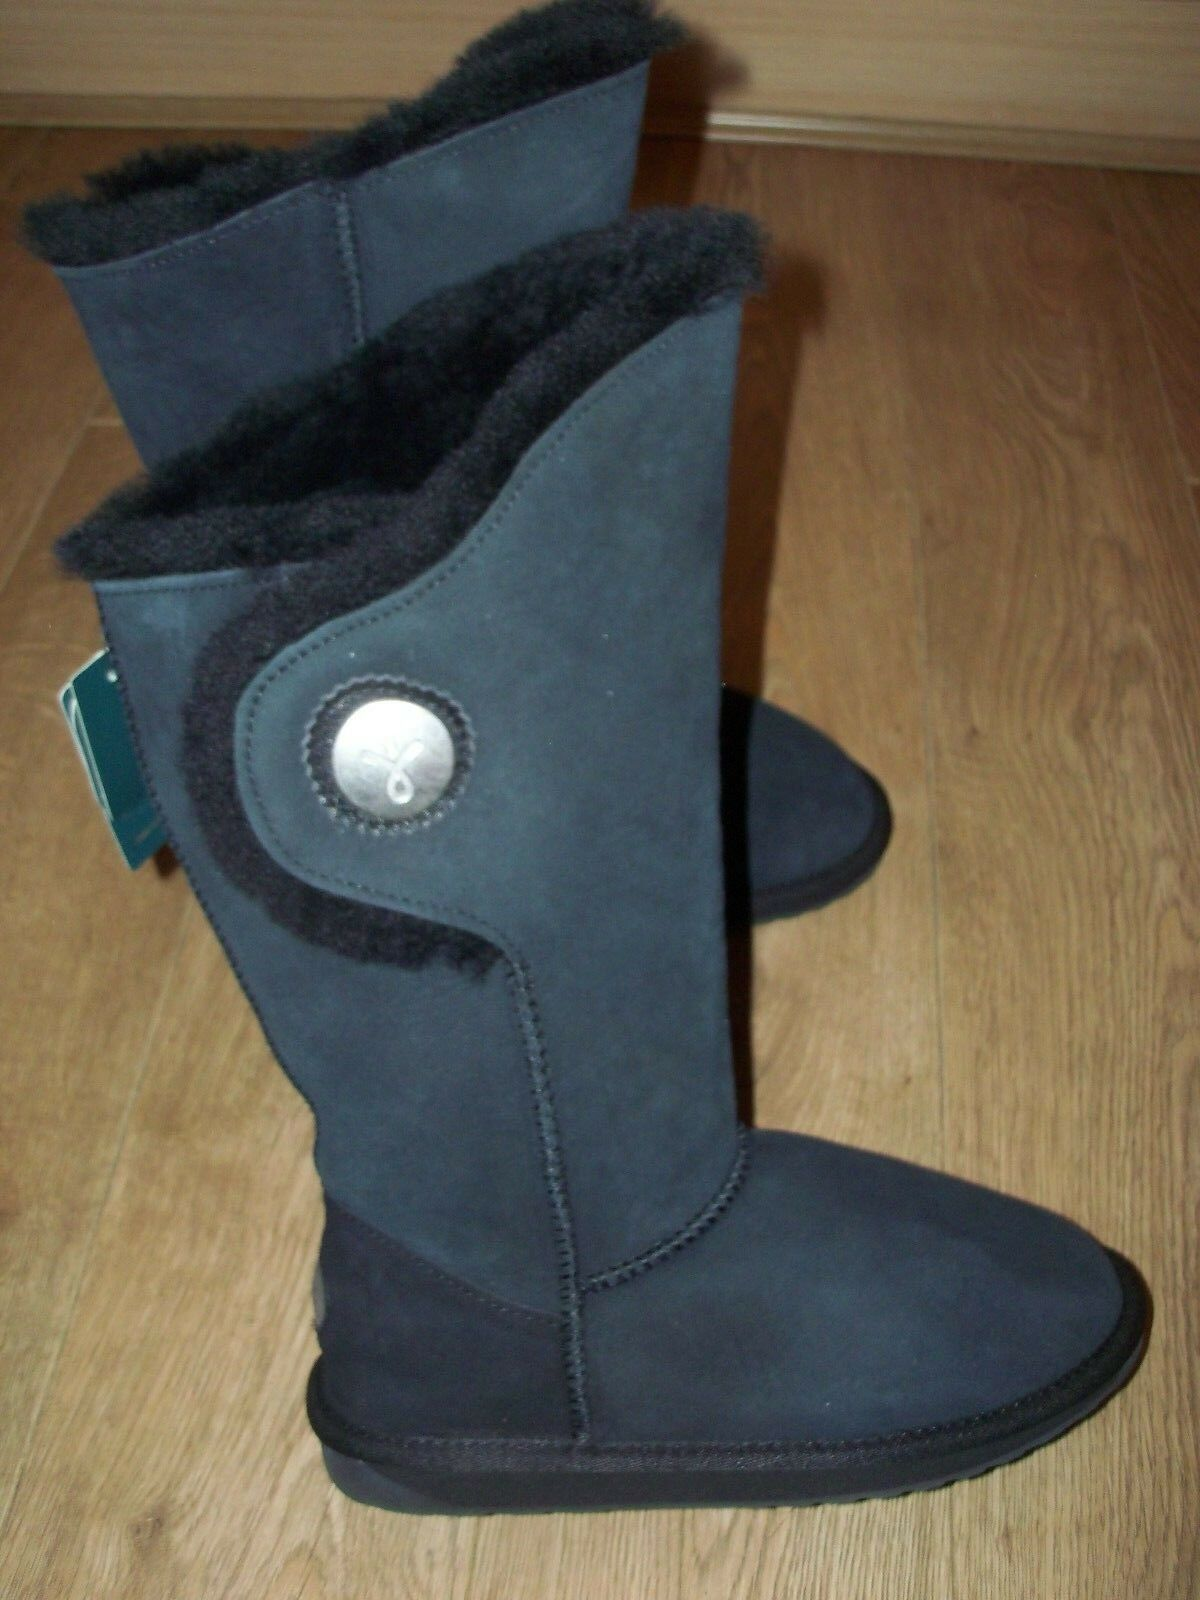 NEW EMU HAKEA HI  of Stiefel Australian Sheepskin Choice of  Colour / Größe 25e601